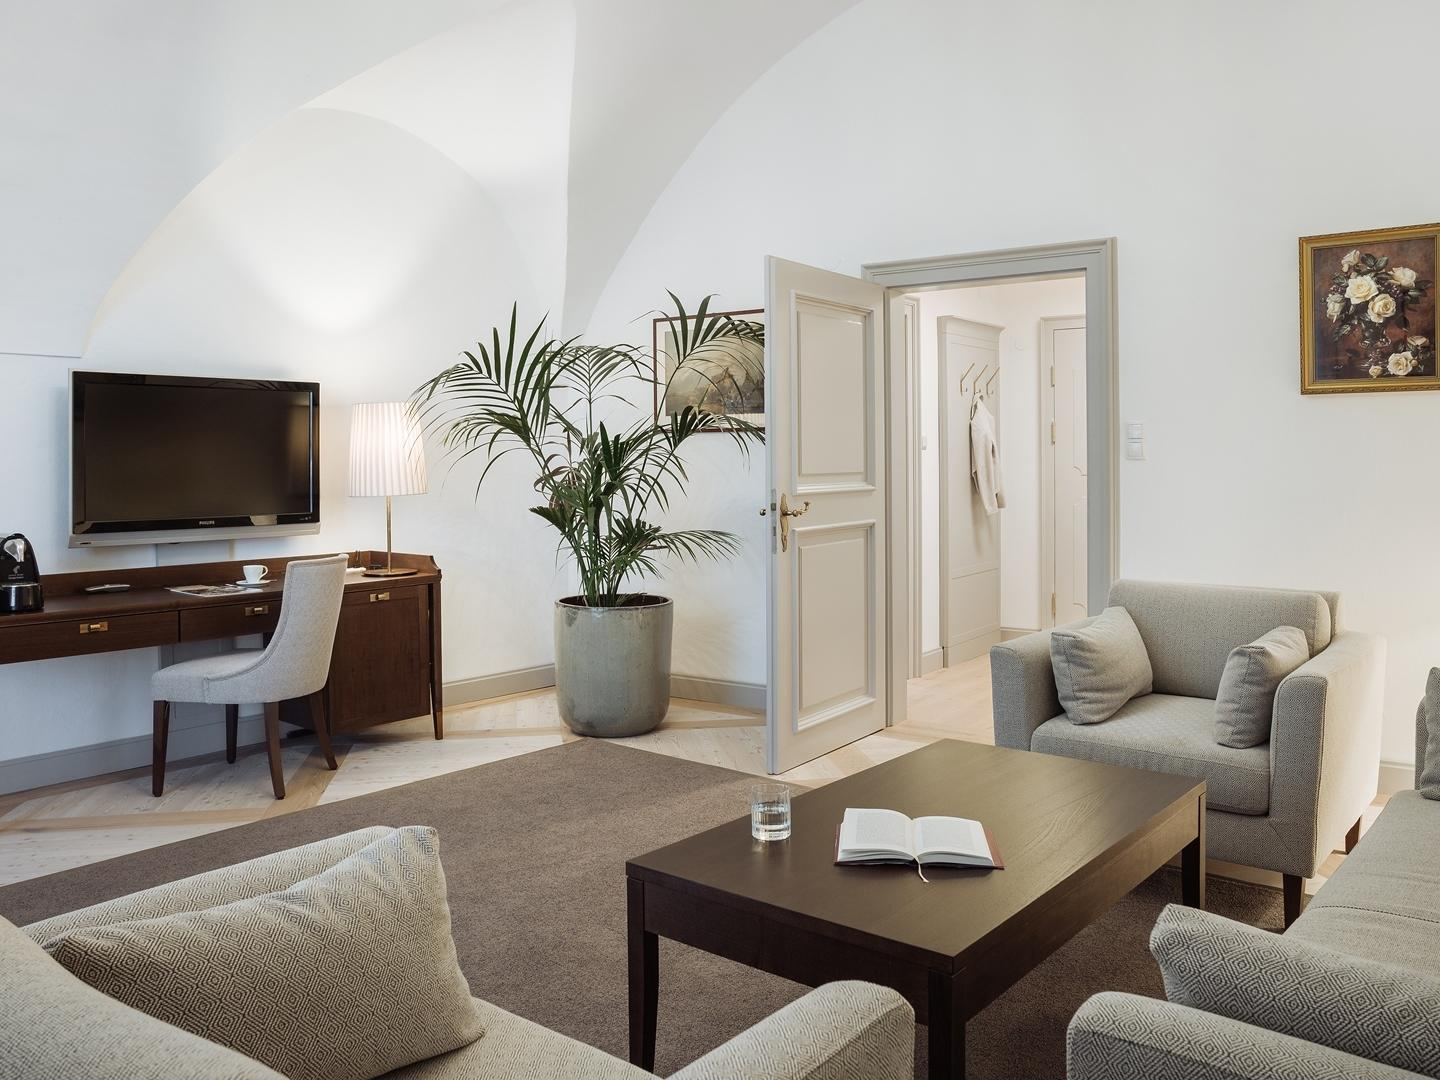 Traditional Suite at Romantik Hotel Schloss Pichlarn